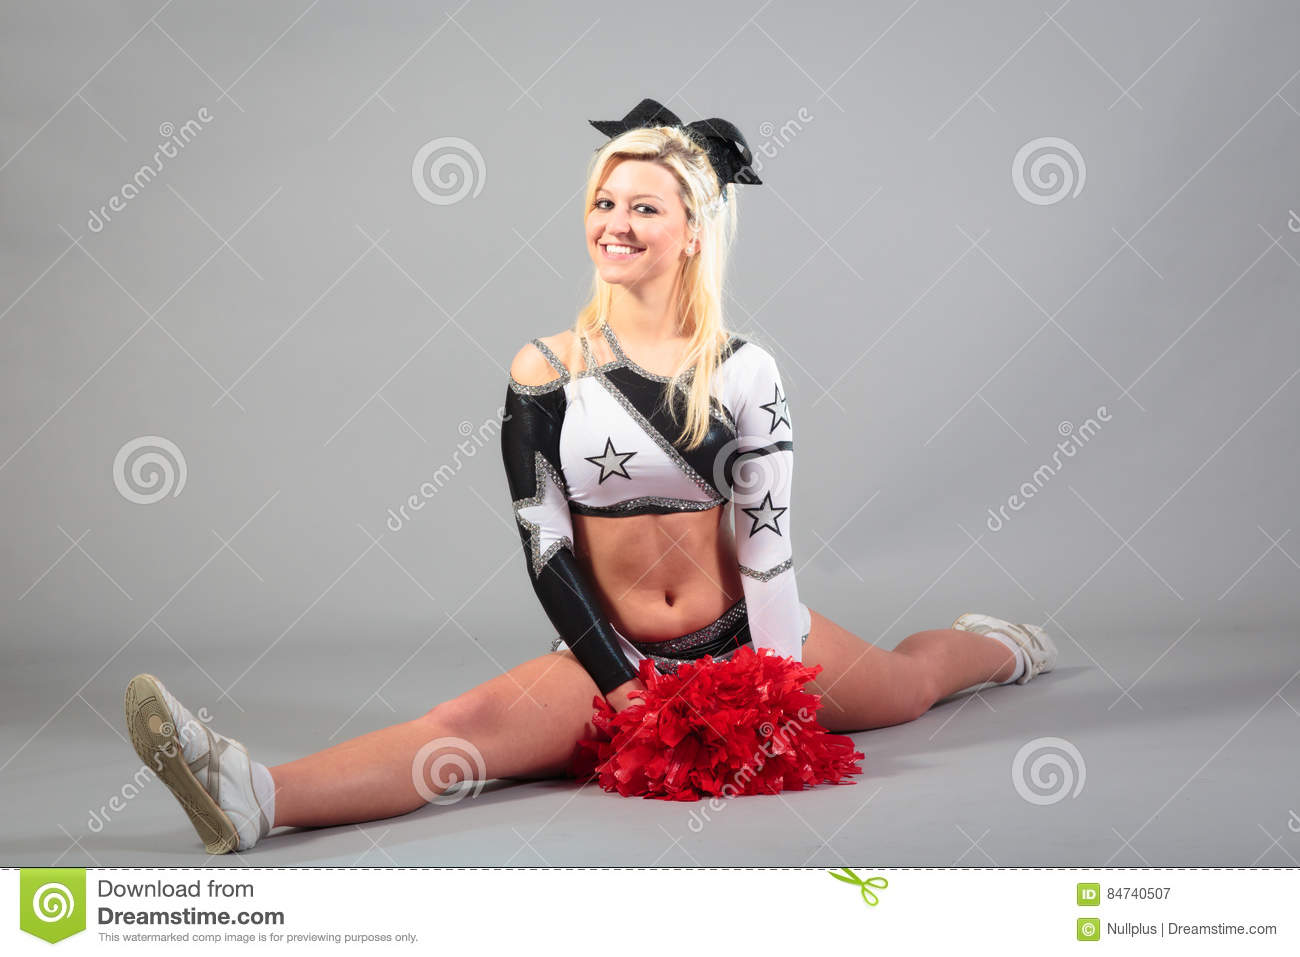 Sexy cheerleader splits